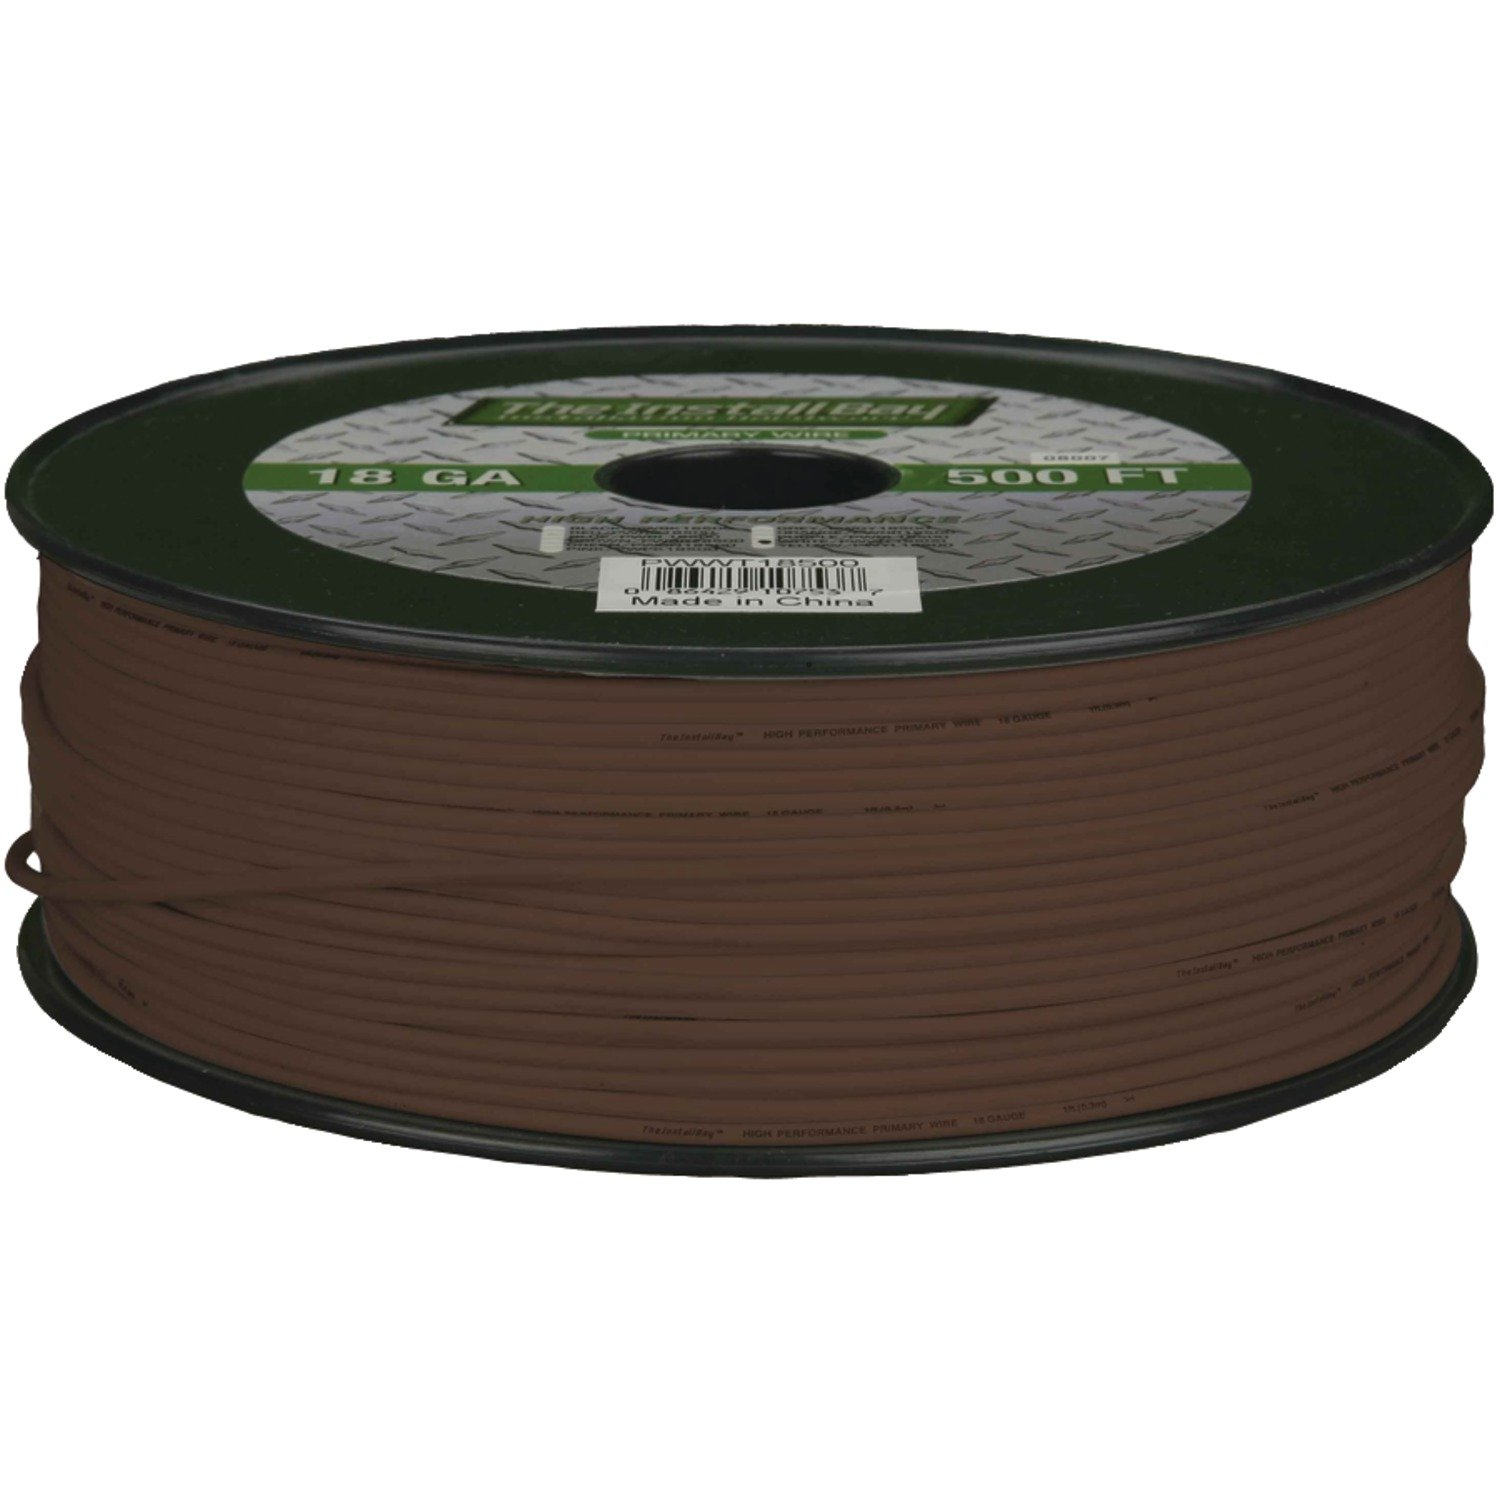 Install Bay PWYL18500 Primary Wire 18 Gauge, 500-Feet (Yellow) Metra Electronics Corporation